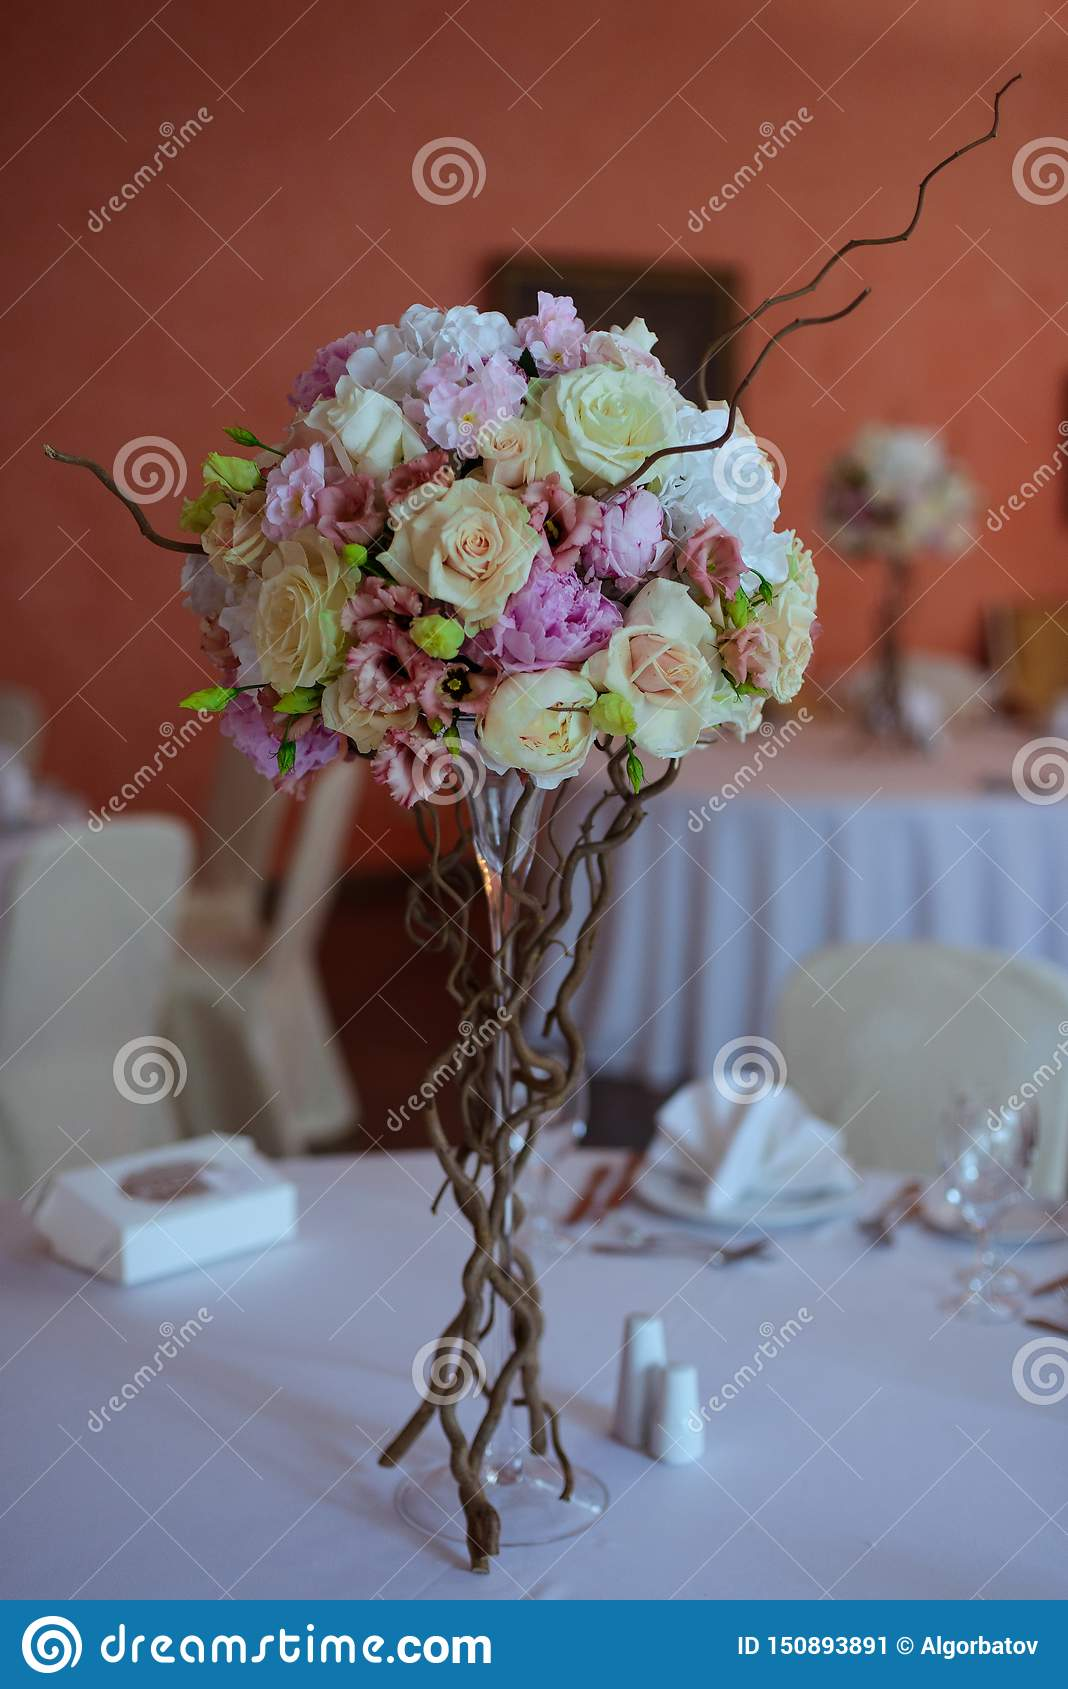 Bouquet of flowers on a leg in the interior of the restaurant for a celebration shop floristry or wedding salon